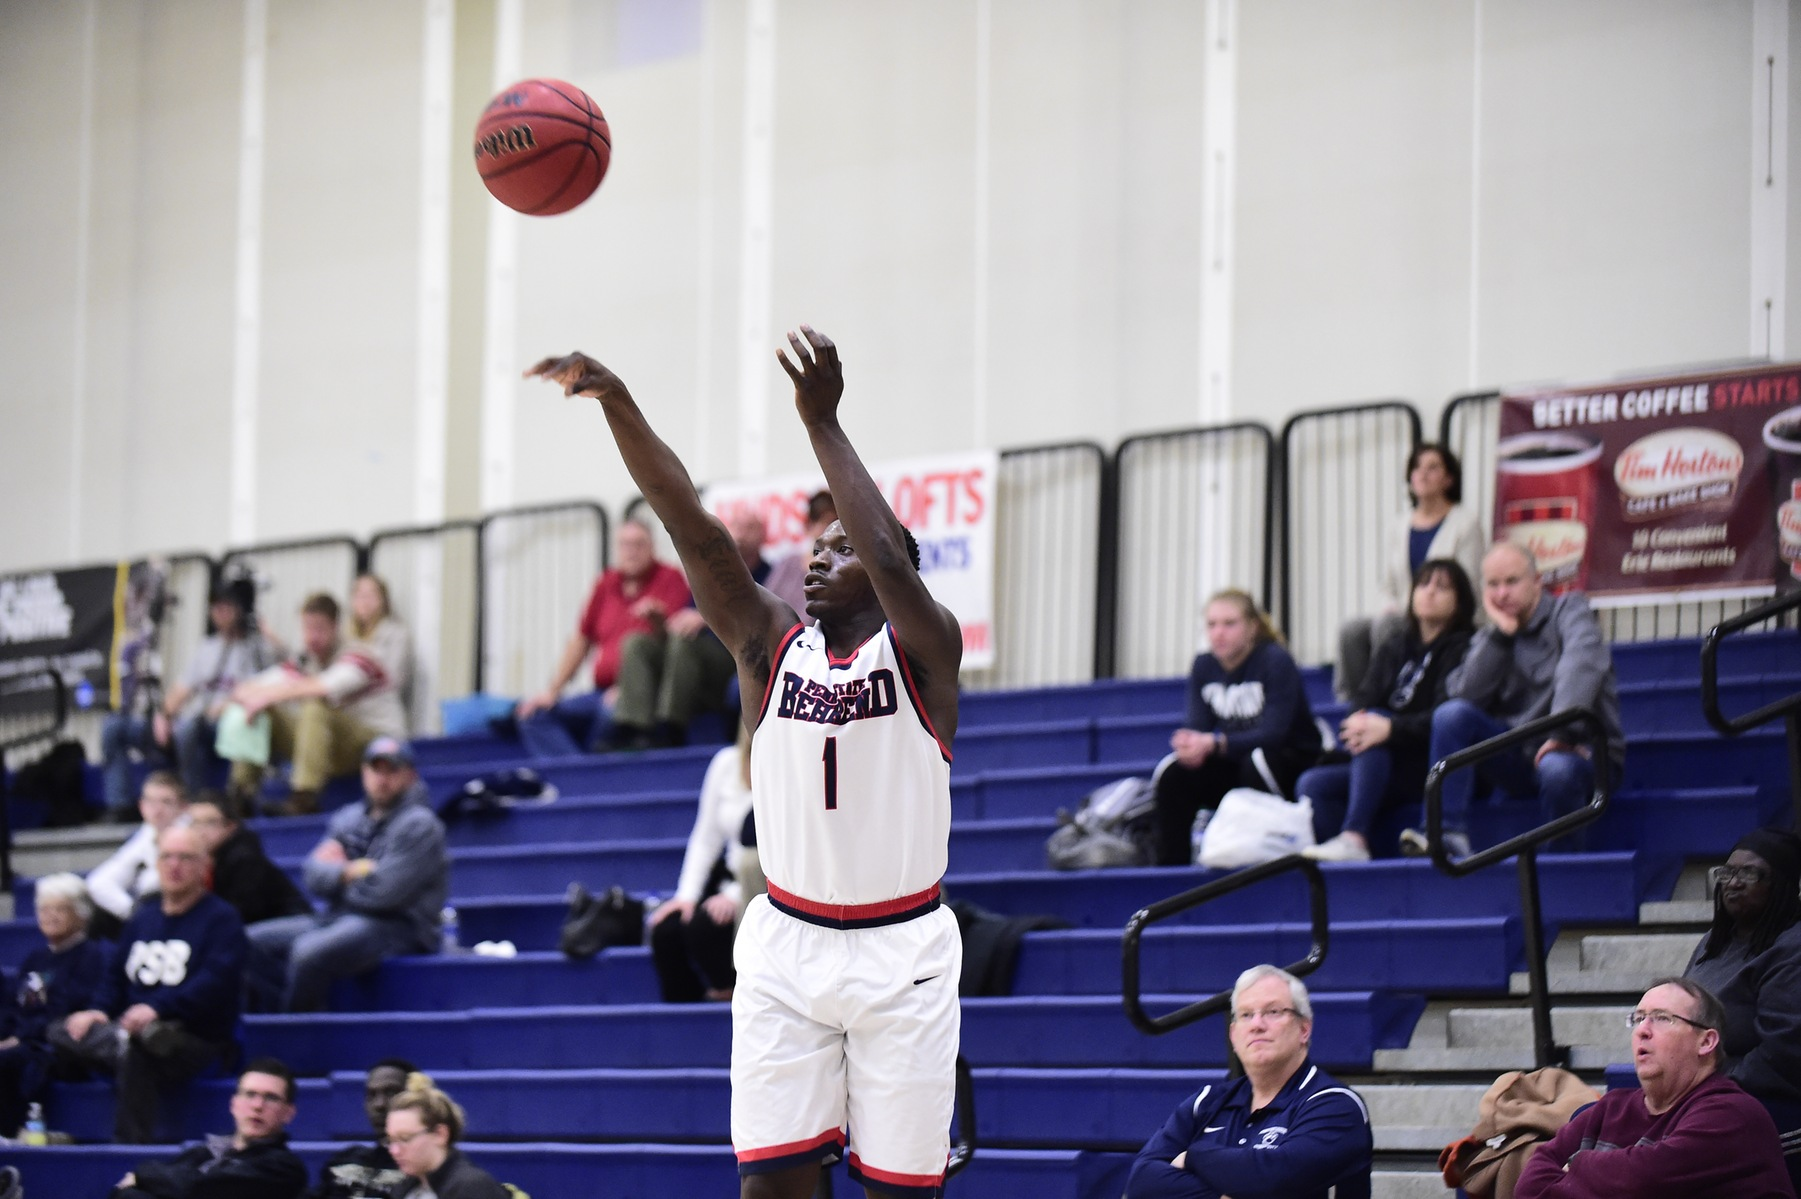 Brinson Leads Men's Basketball Past Mt. Aloysius